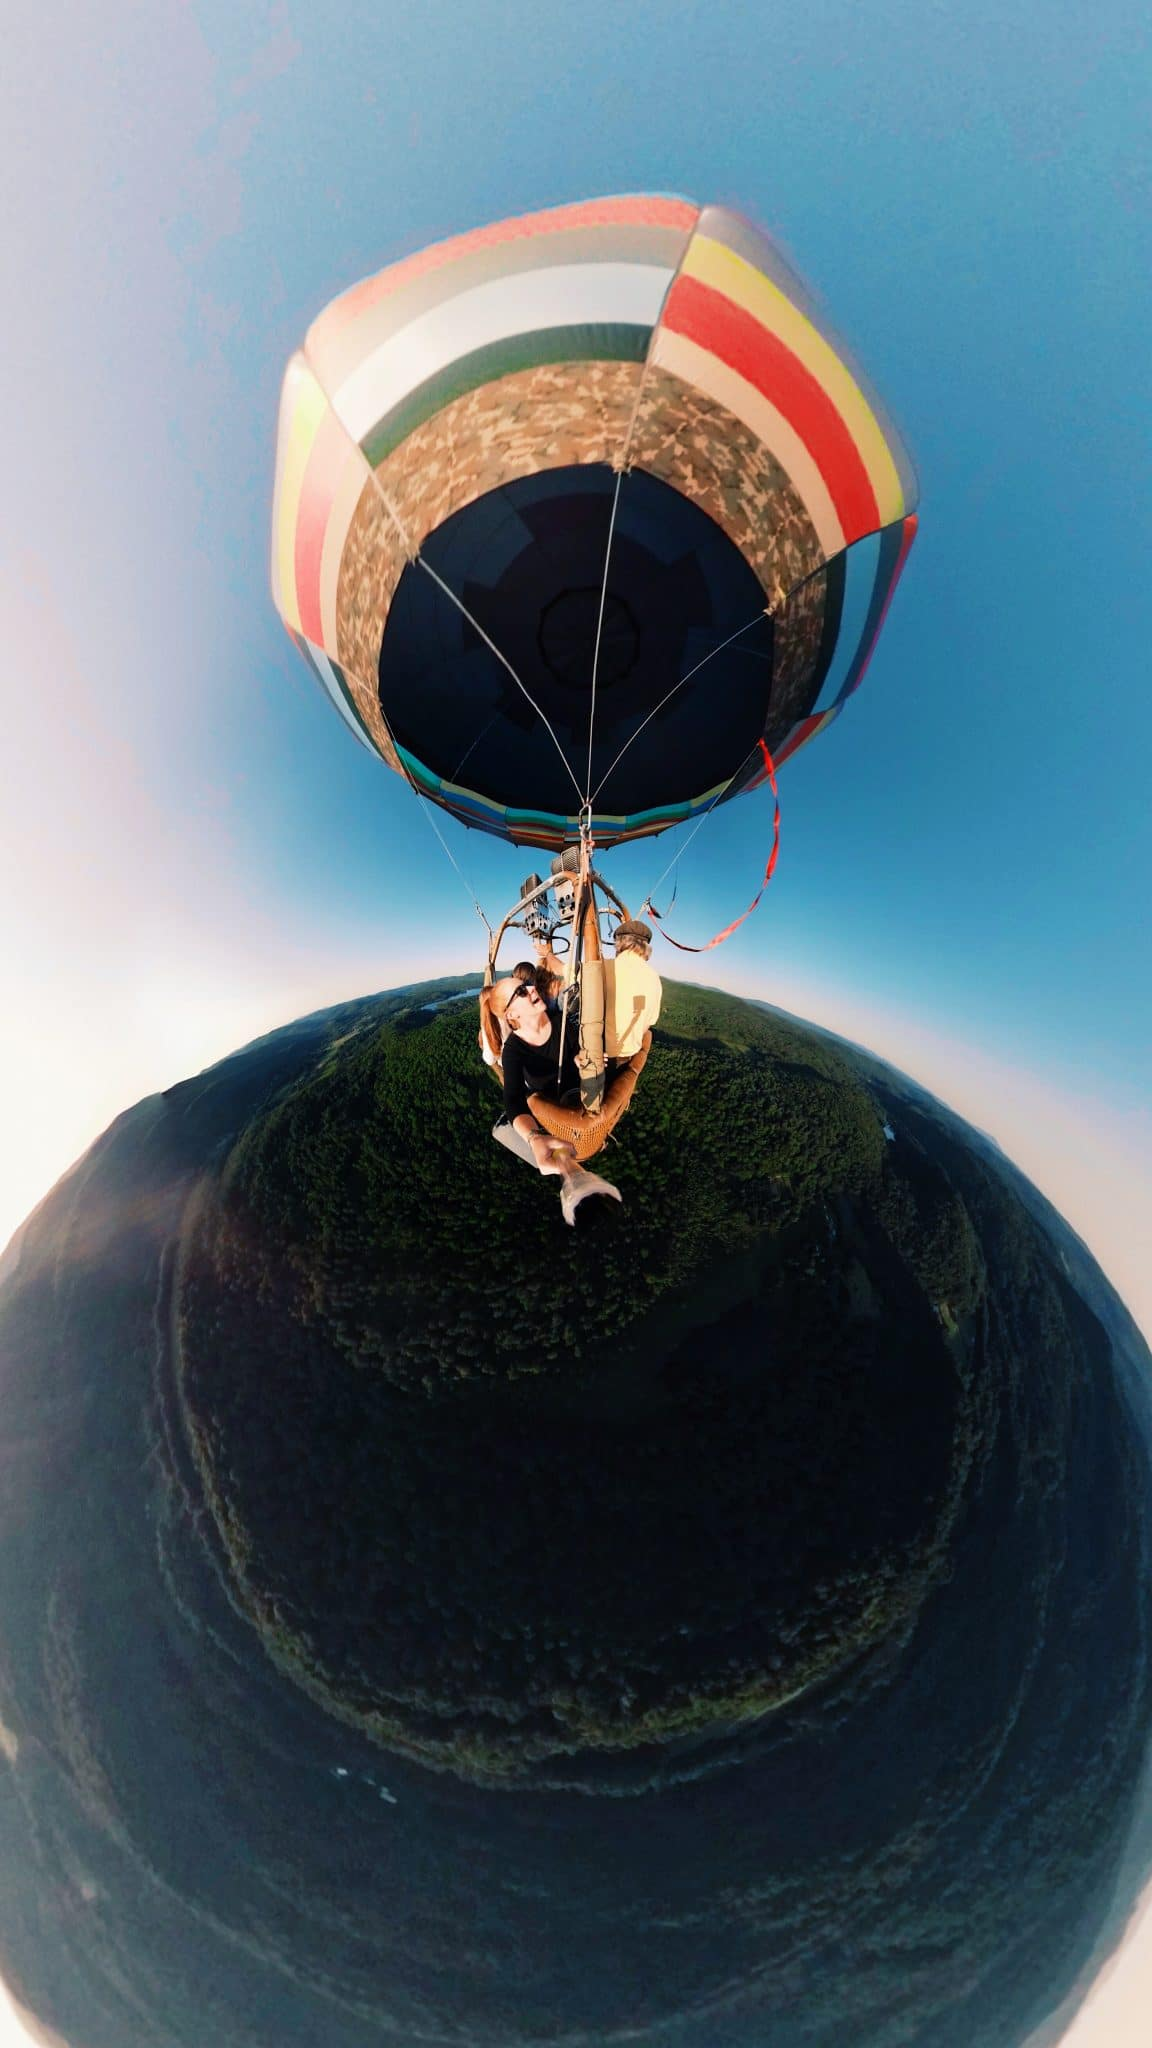 A fish eye view of a hot air balloon with Stevie Faulk in the basket